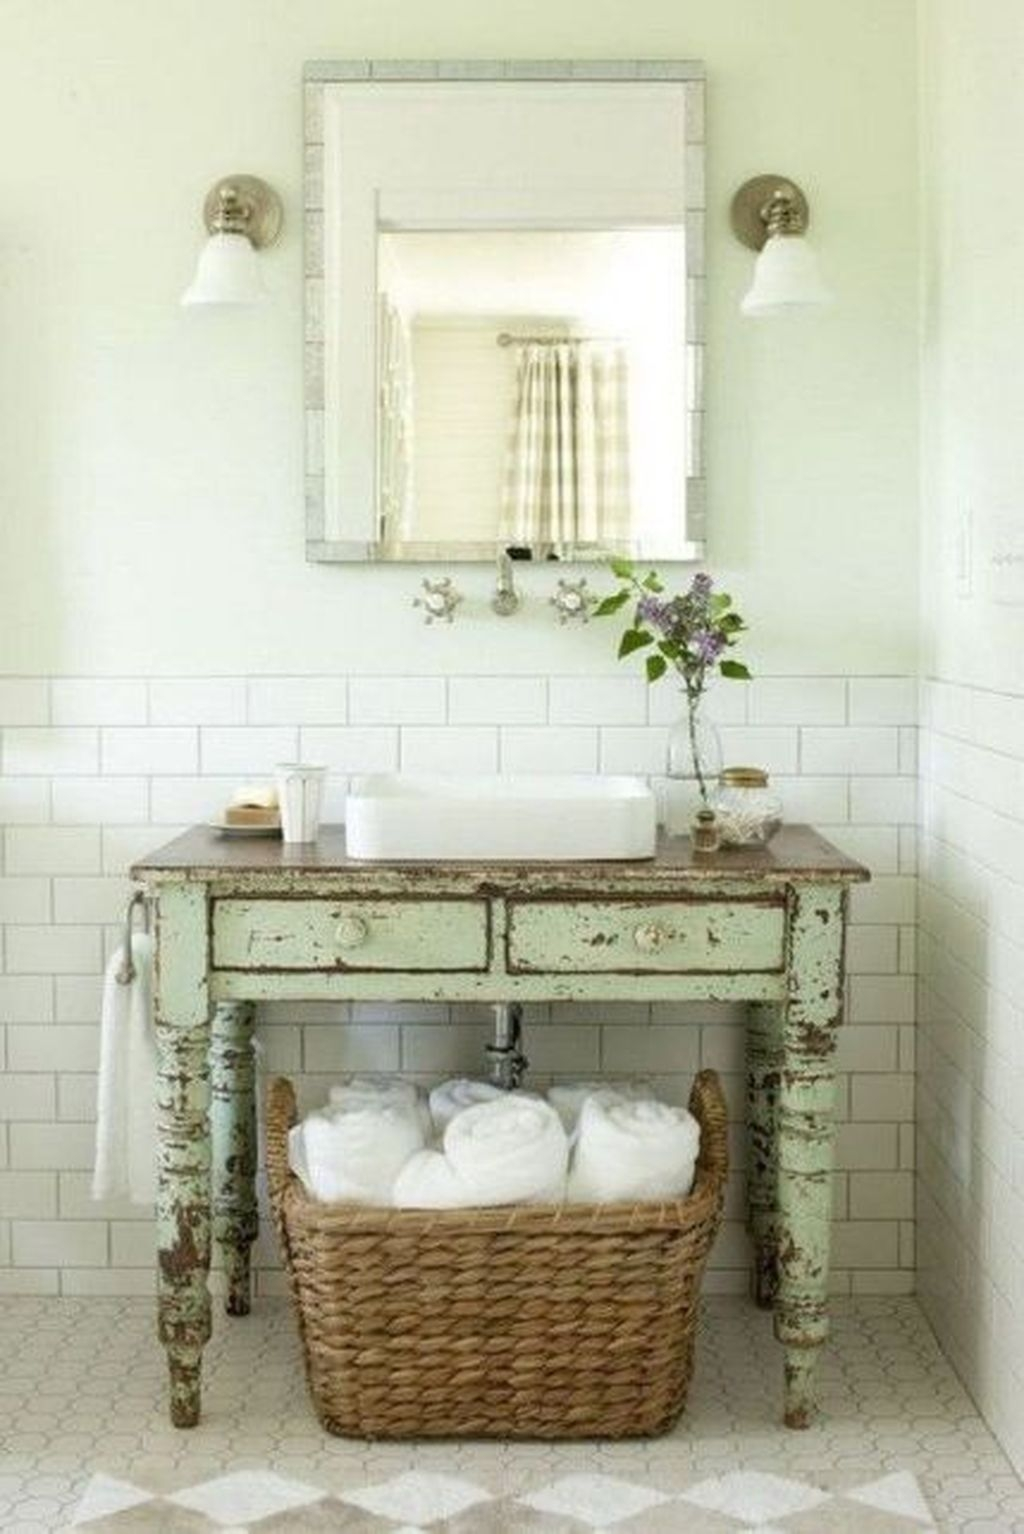 Perfect Rustic Farmhouse Bathroom Design Ideas 40